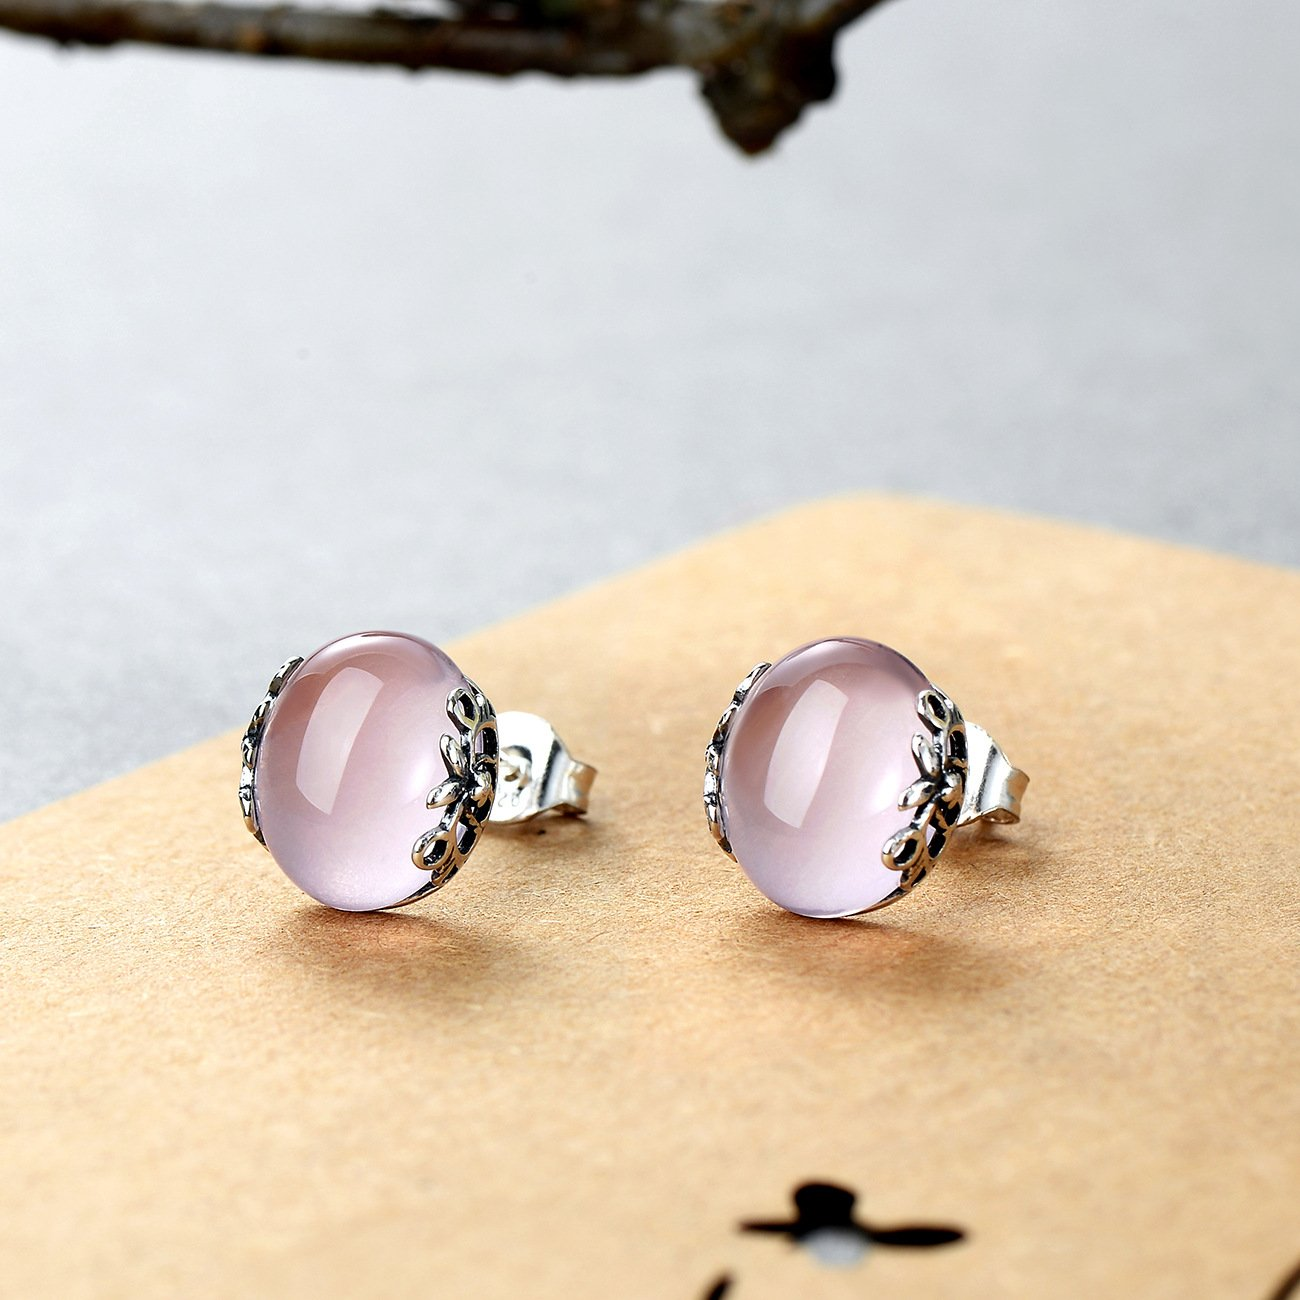 Vintage Pink  Engraving Crystal Stud Earrings